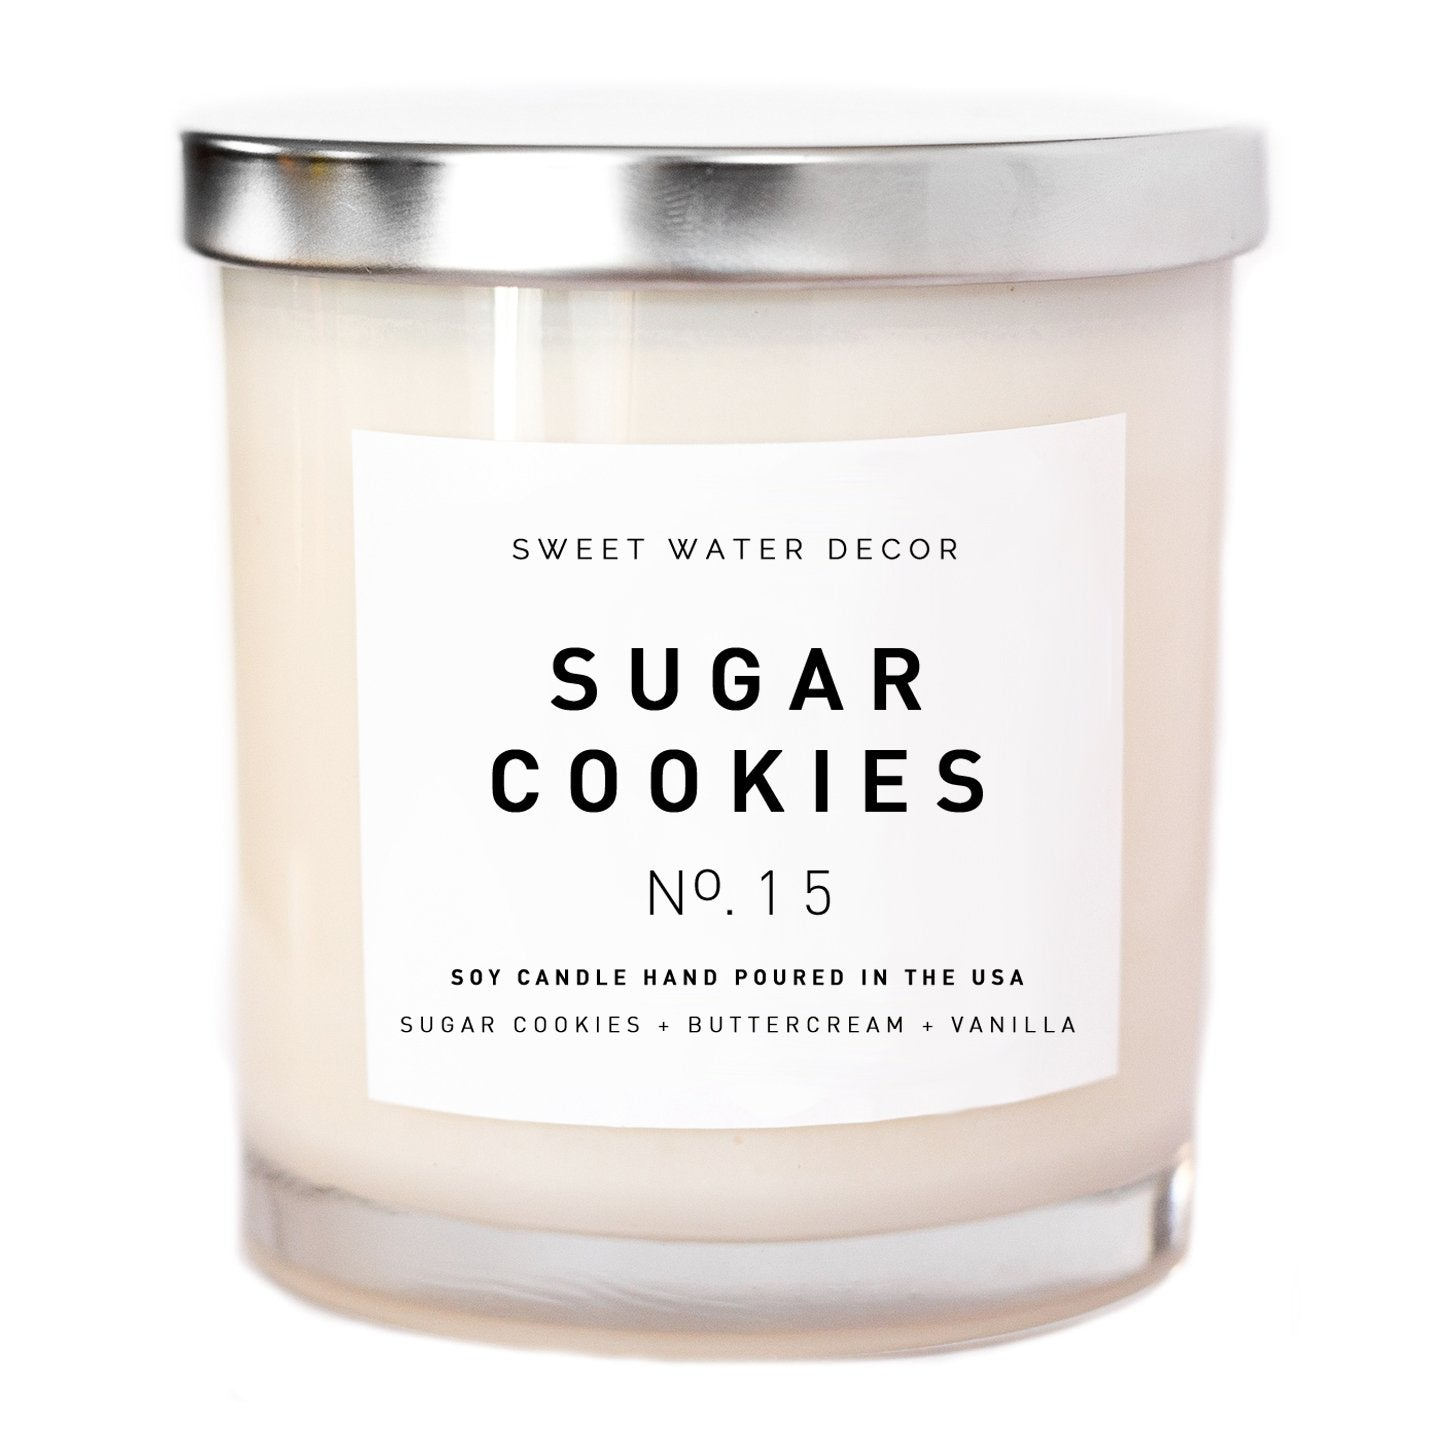 Sweet Water Decor - Sugar Cookies Soy Candle | White Jar Candle